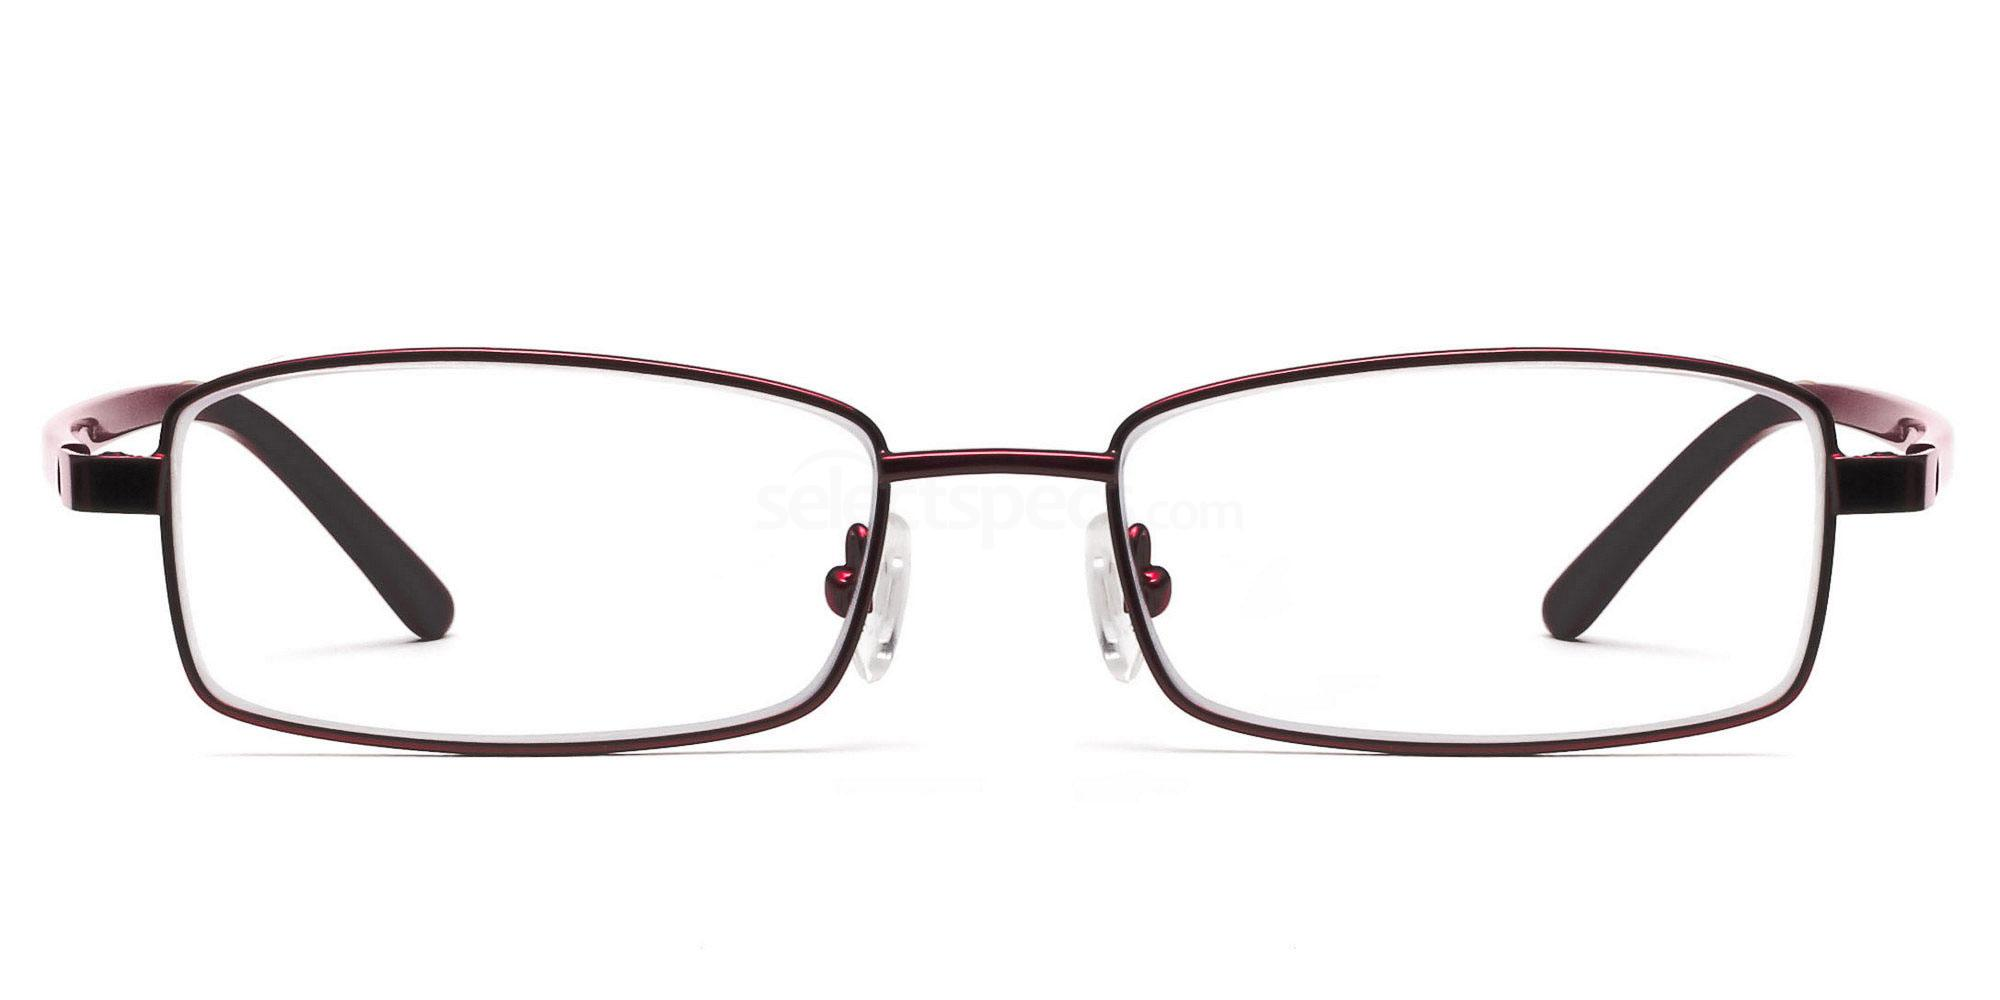 Savannah 6058 - Red Prescription Glasses. Free lenses ...